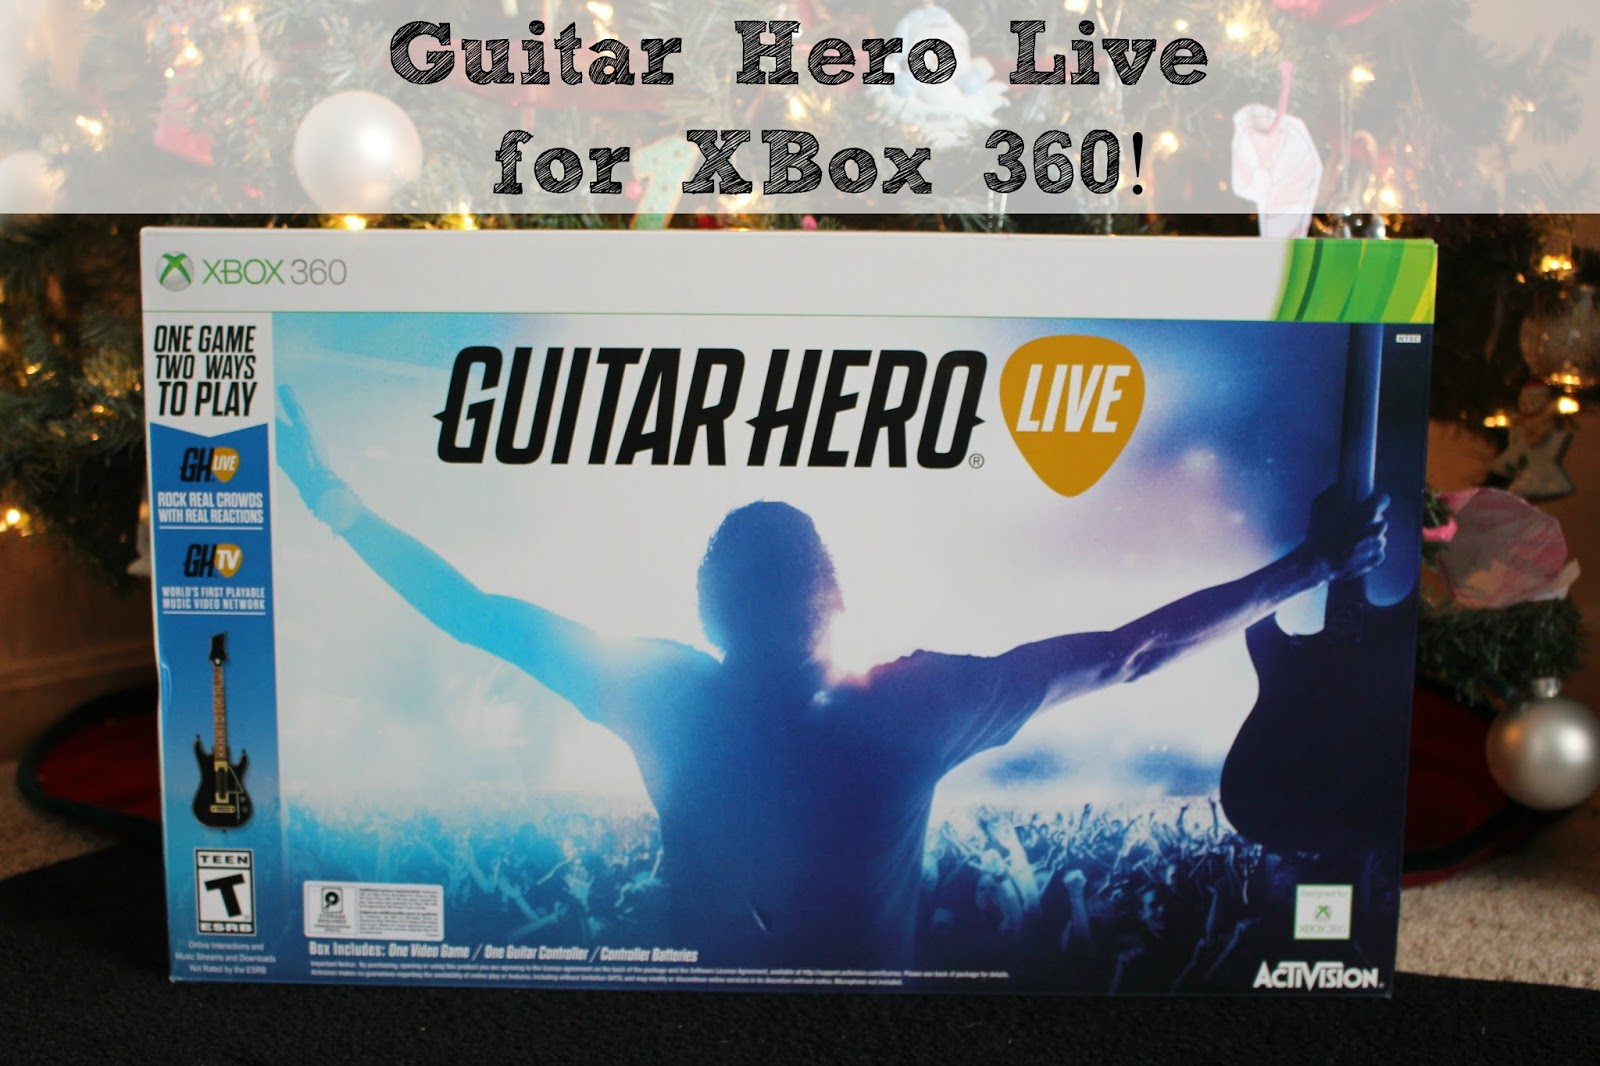 Cooking Games For Xbox 360 : Guitar hero live for xbox holidaygiftguide the